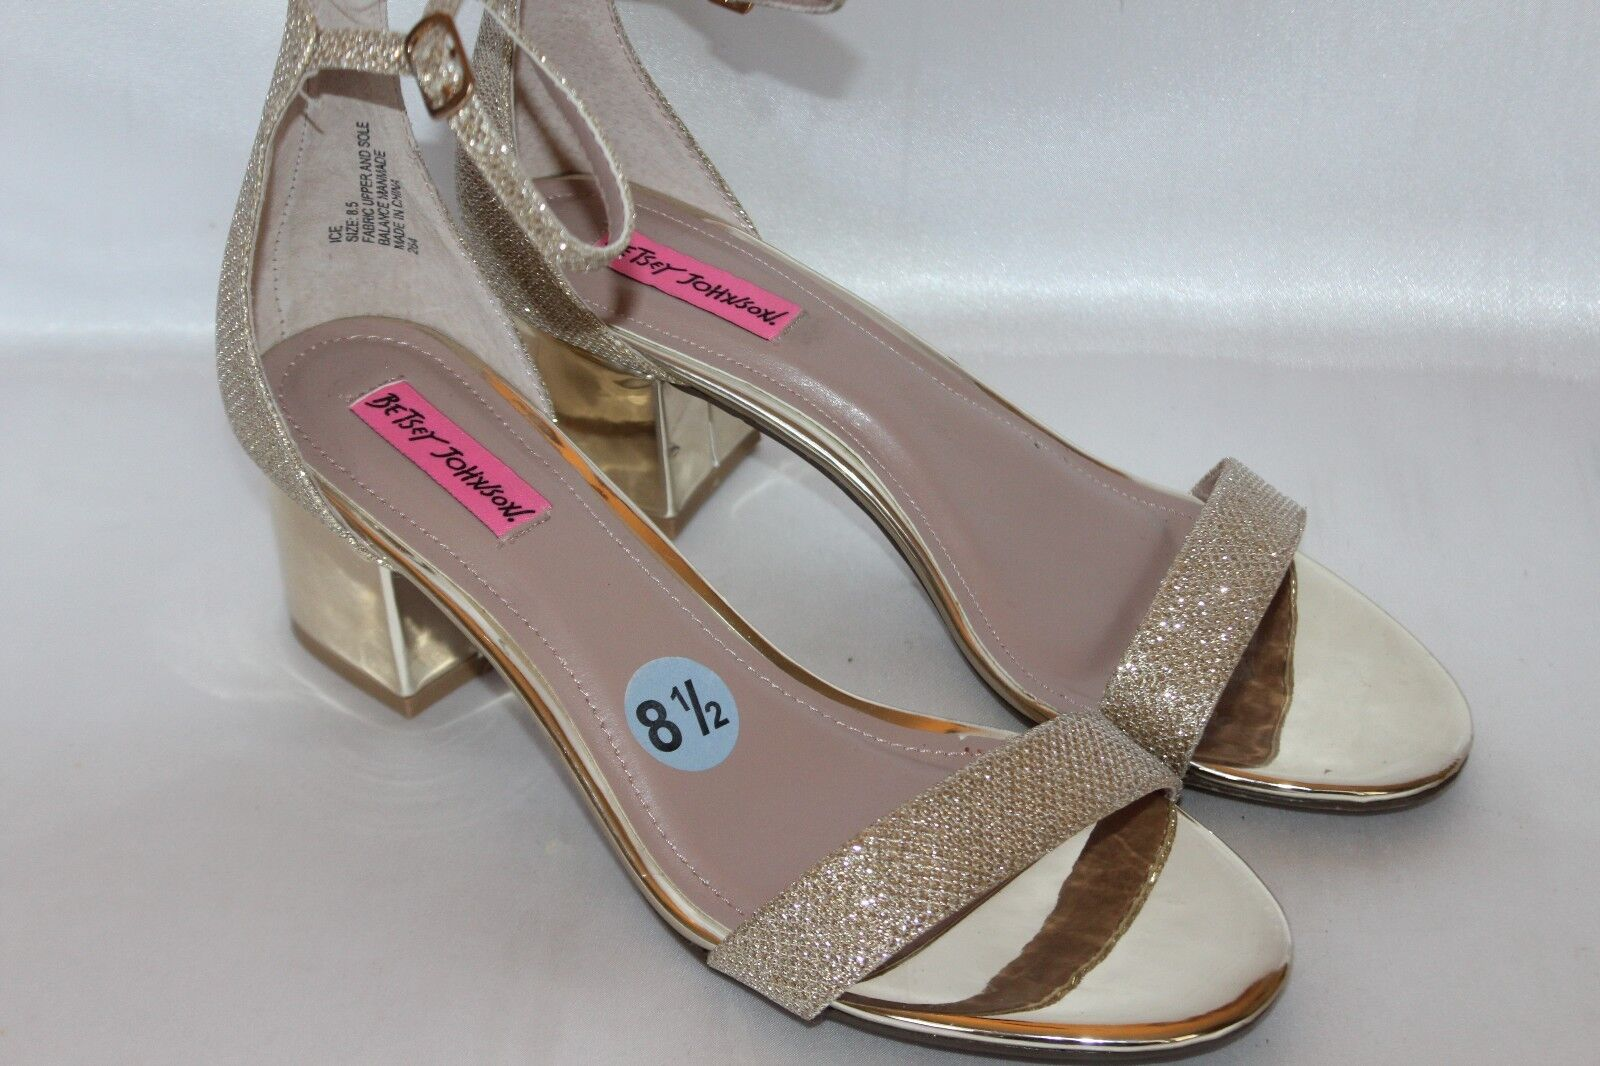 NEW  BETSEY JOHNSON Blau Gold Sparkle Toe LIBRA Ankle Strap Open Toe Sparkle Heels Sz 8.5 e211ce